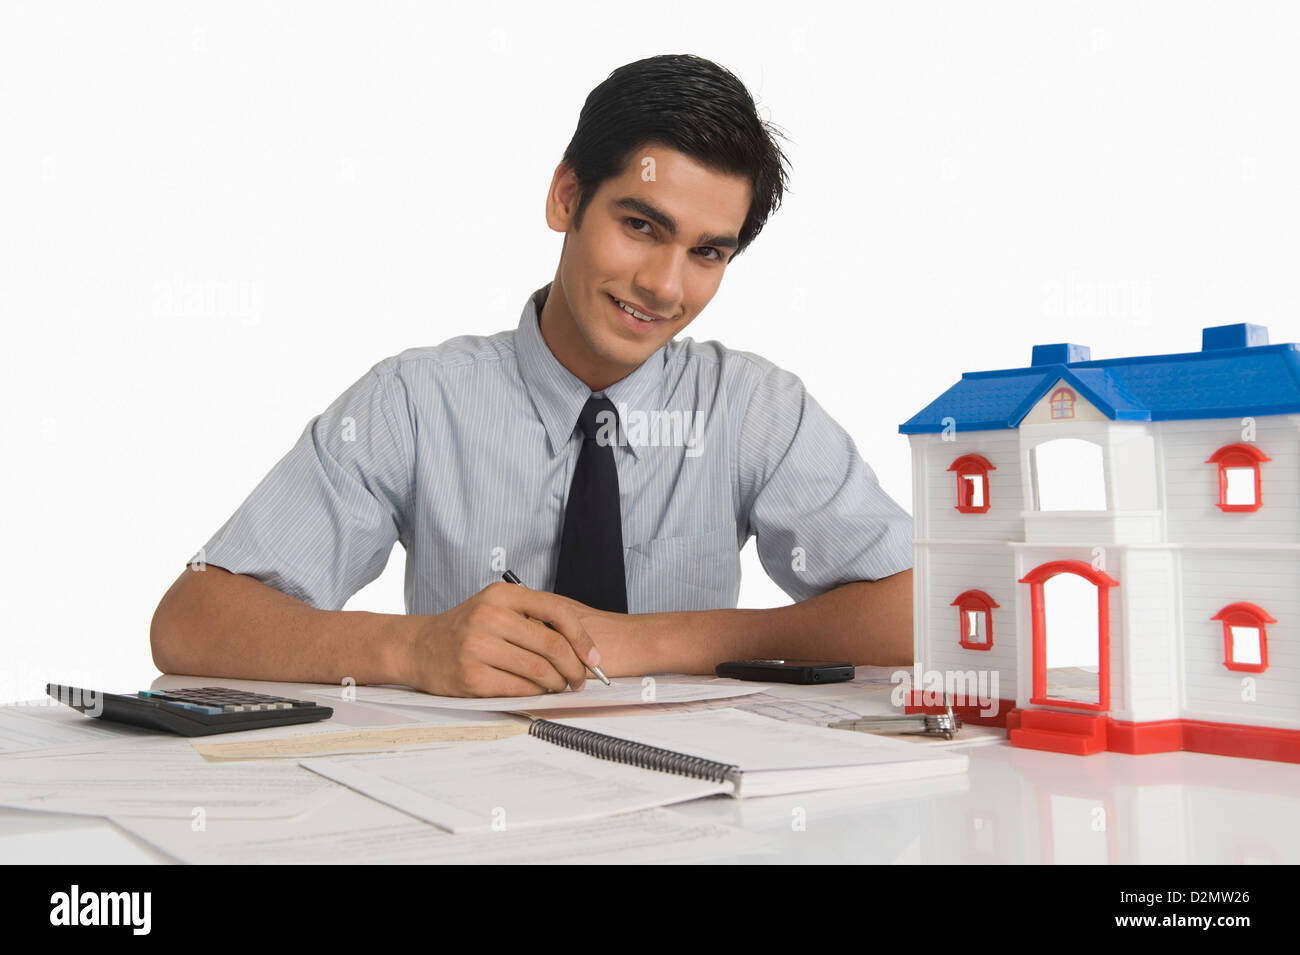 Real estate agent budgeting near a model home - Stock Image